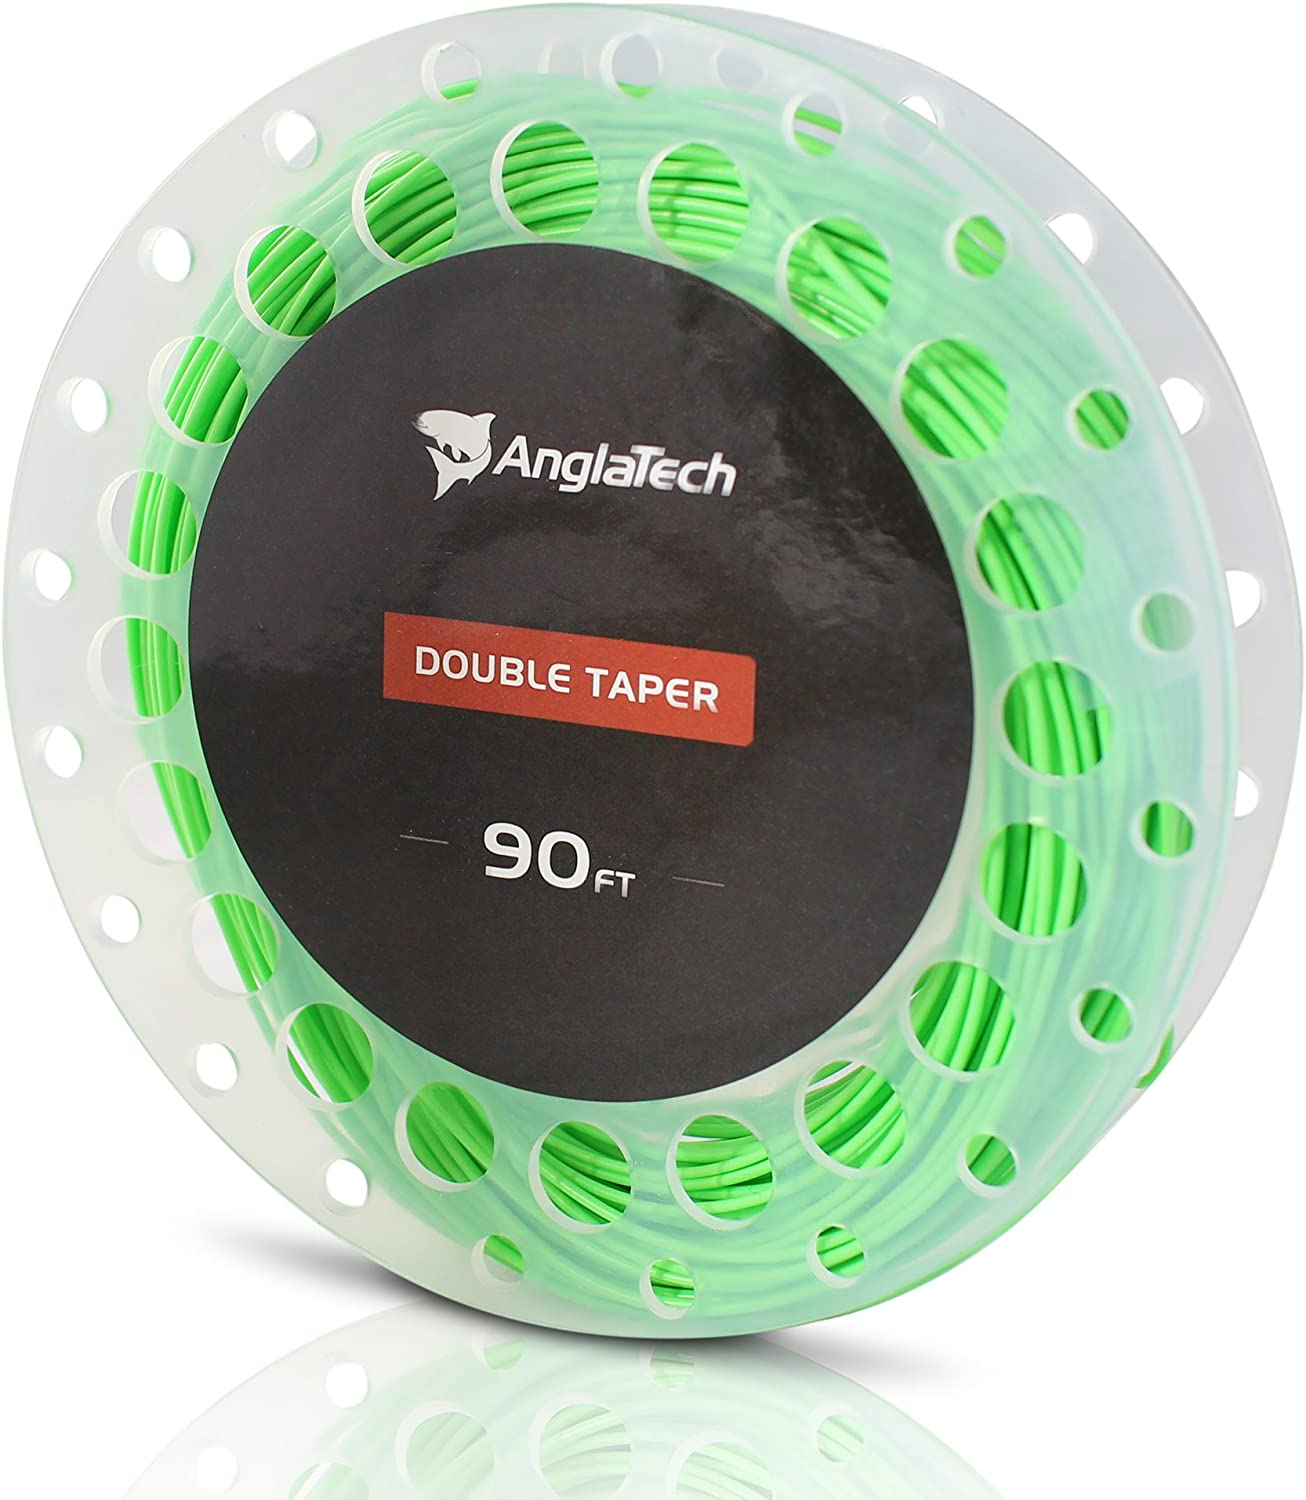 New Anglatech Double Taper Floating Fly Fishing Line DT 4 5 6 WT Welded Loops..